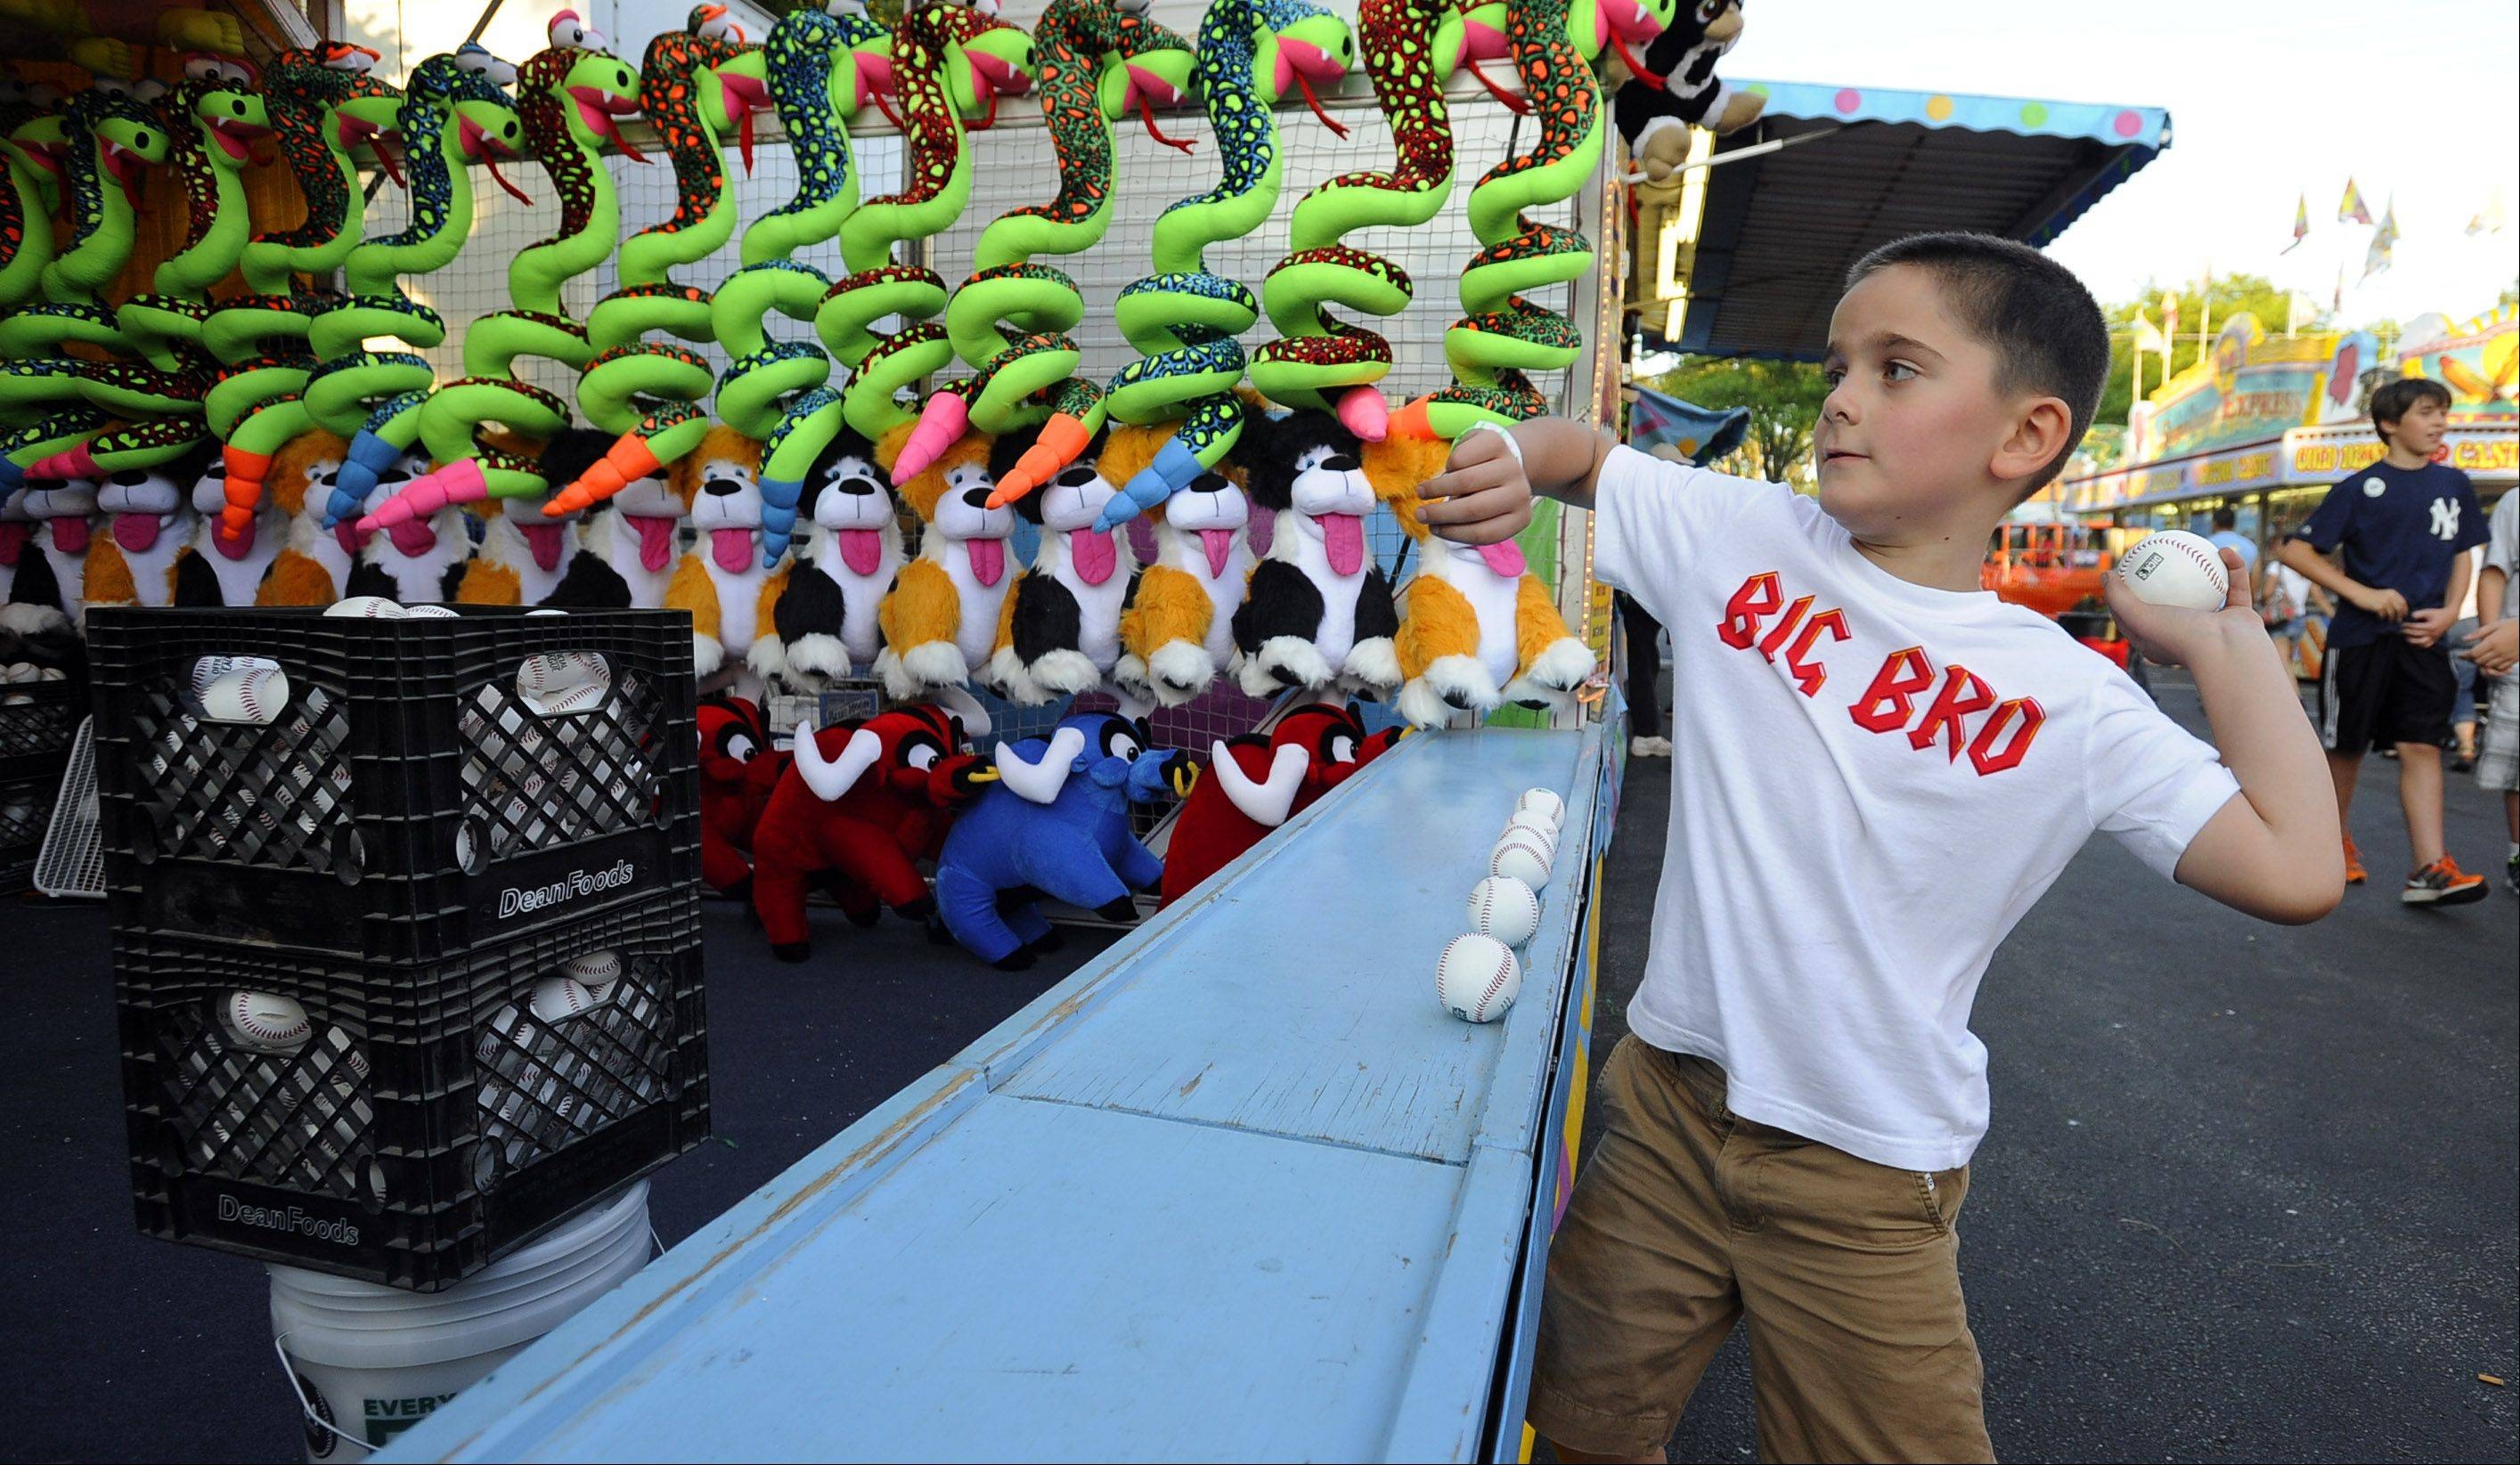 The windup and the pitch, Carson Stech, 6, delivers his fast pitch at the baseball game at opening night at Buffalo Grove Days Thursday.